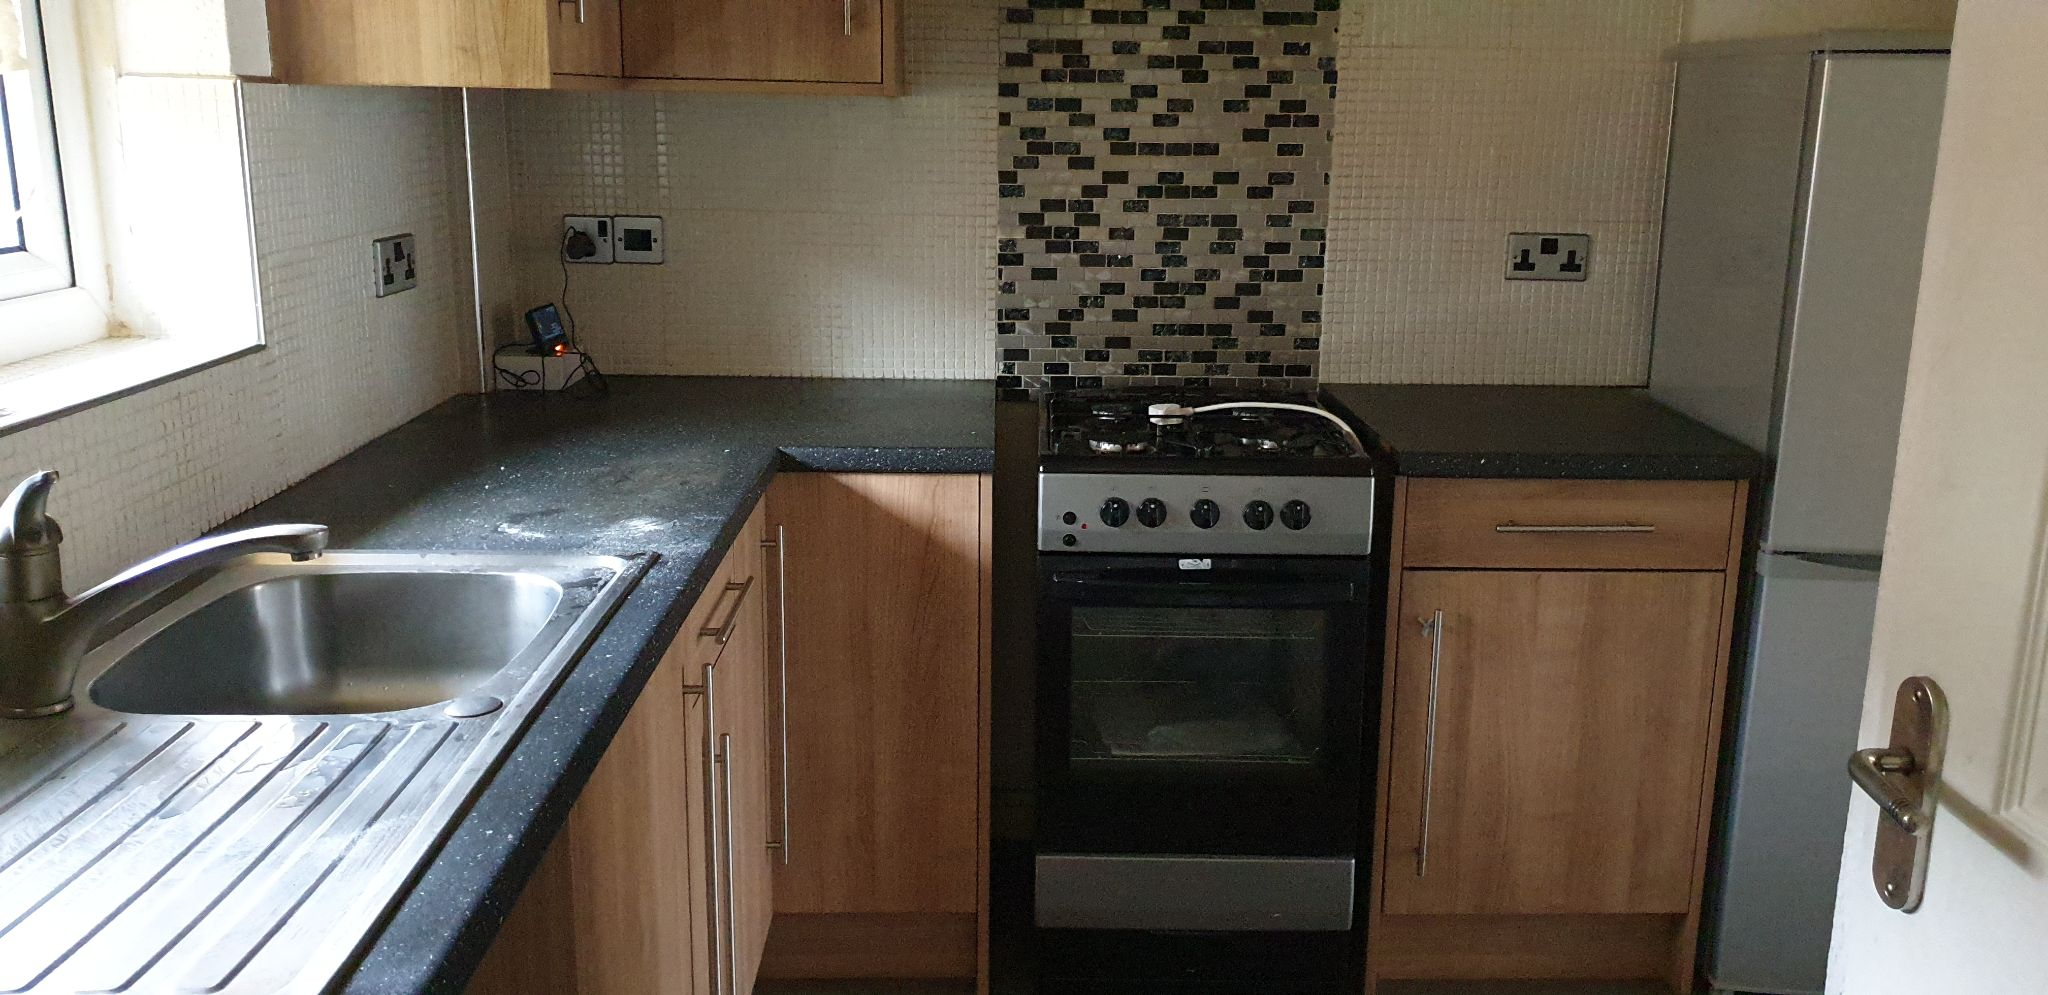 2 Bedroom Town House To Let 57 Balderstone Close Image 3